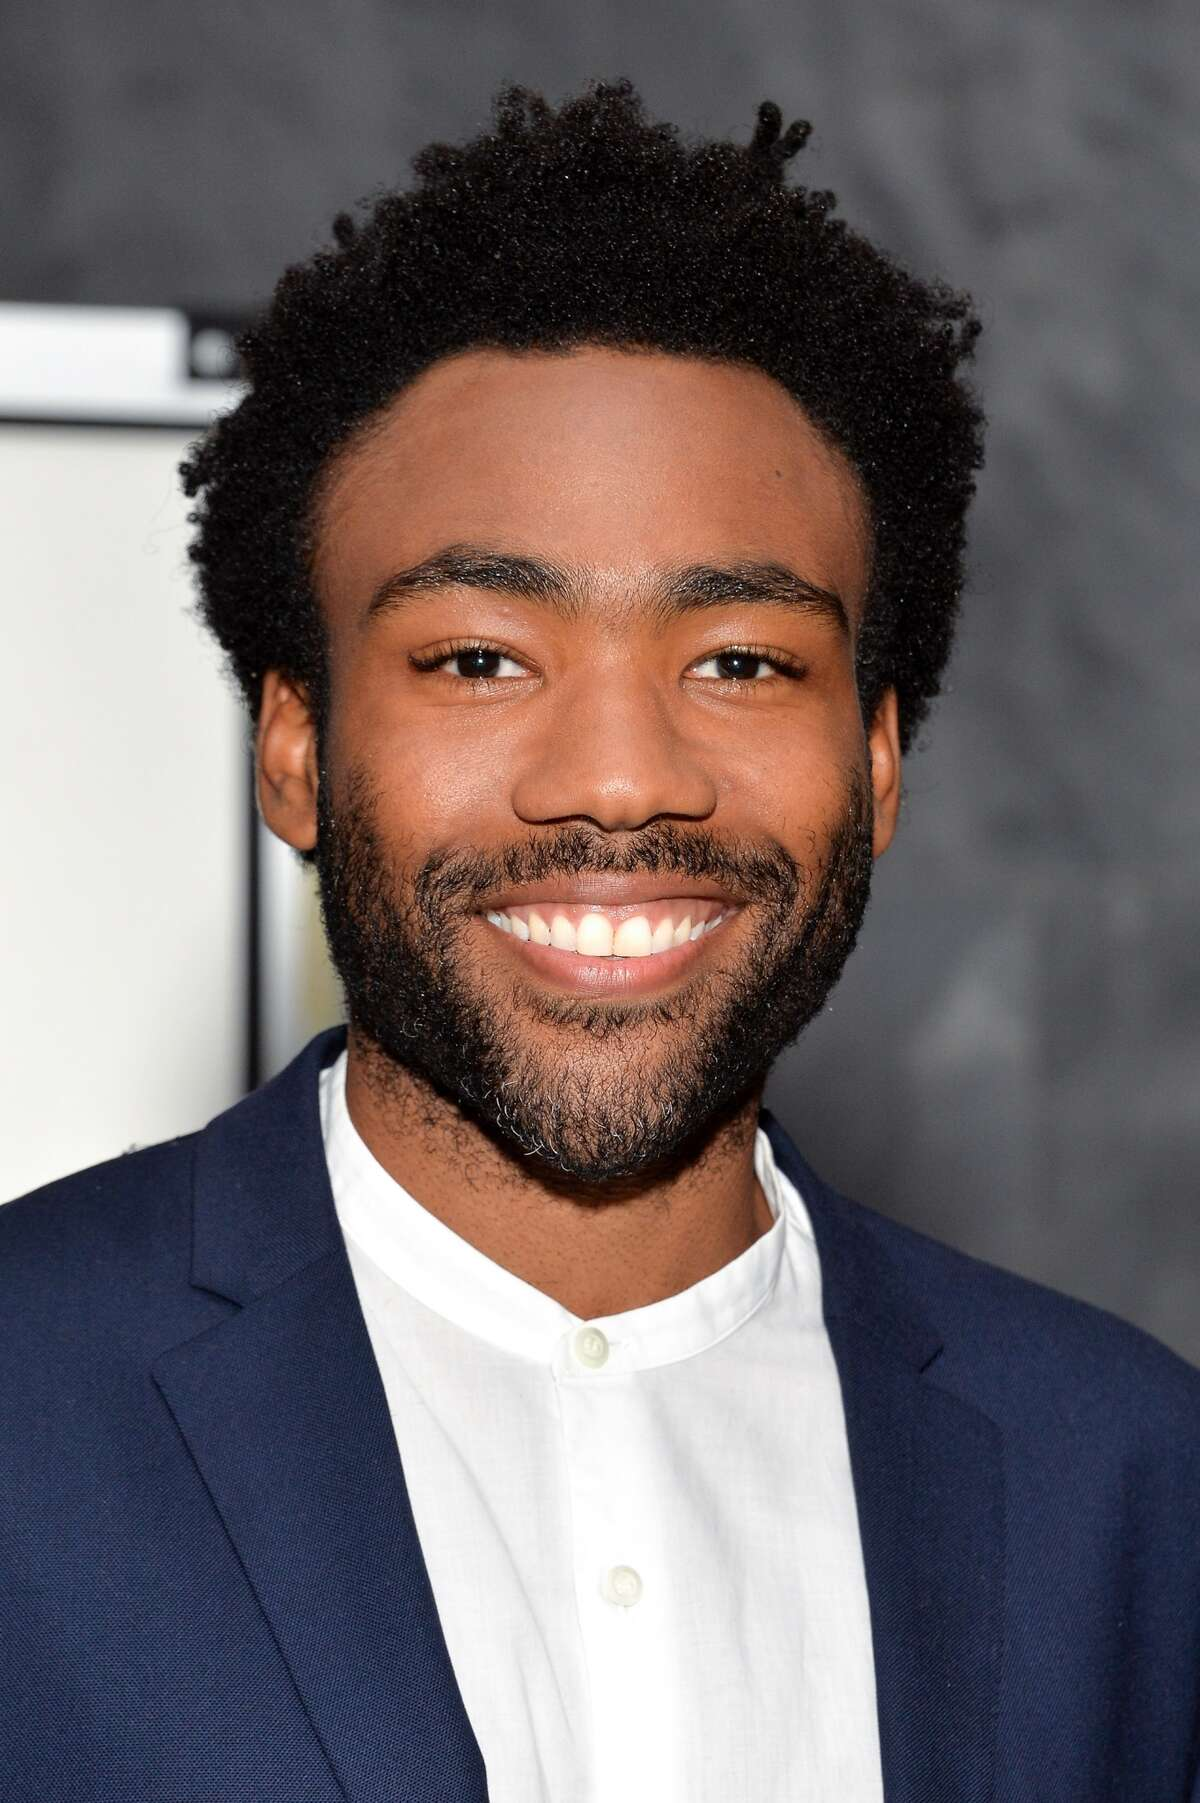 NEW YORK, NY - AUGUST 23: Donald Glover attends the 'Atlanta' New York screening at The Paley Center for Media on August 23, 2016 in New York City.